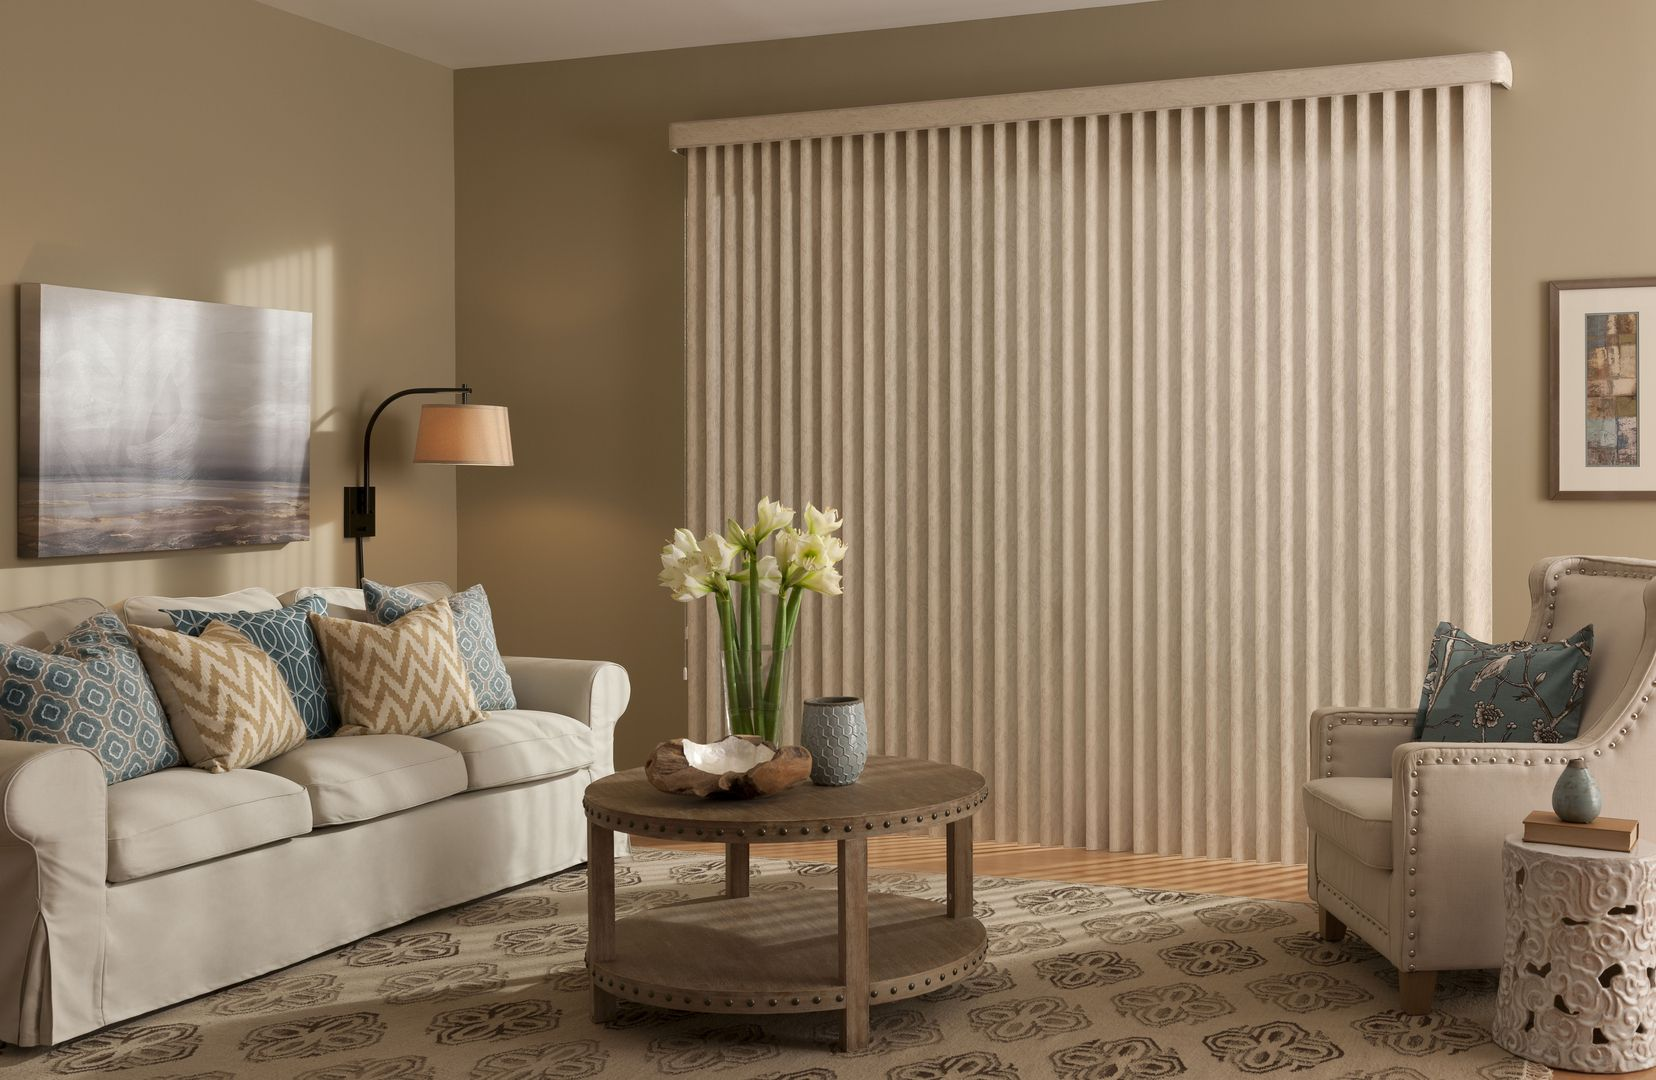 replace win blinds myhomedesign a battery alta honeycomb van go